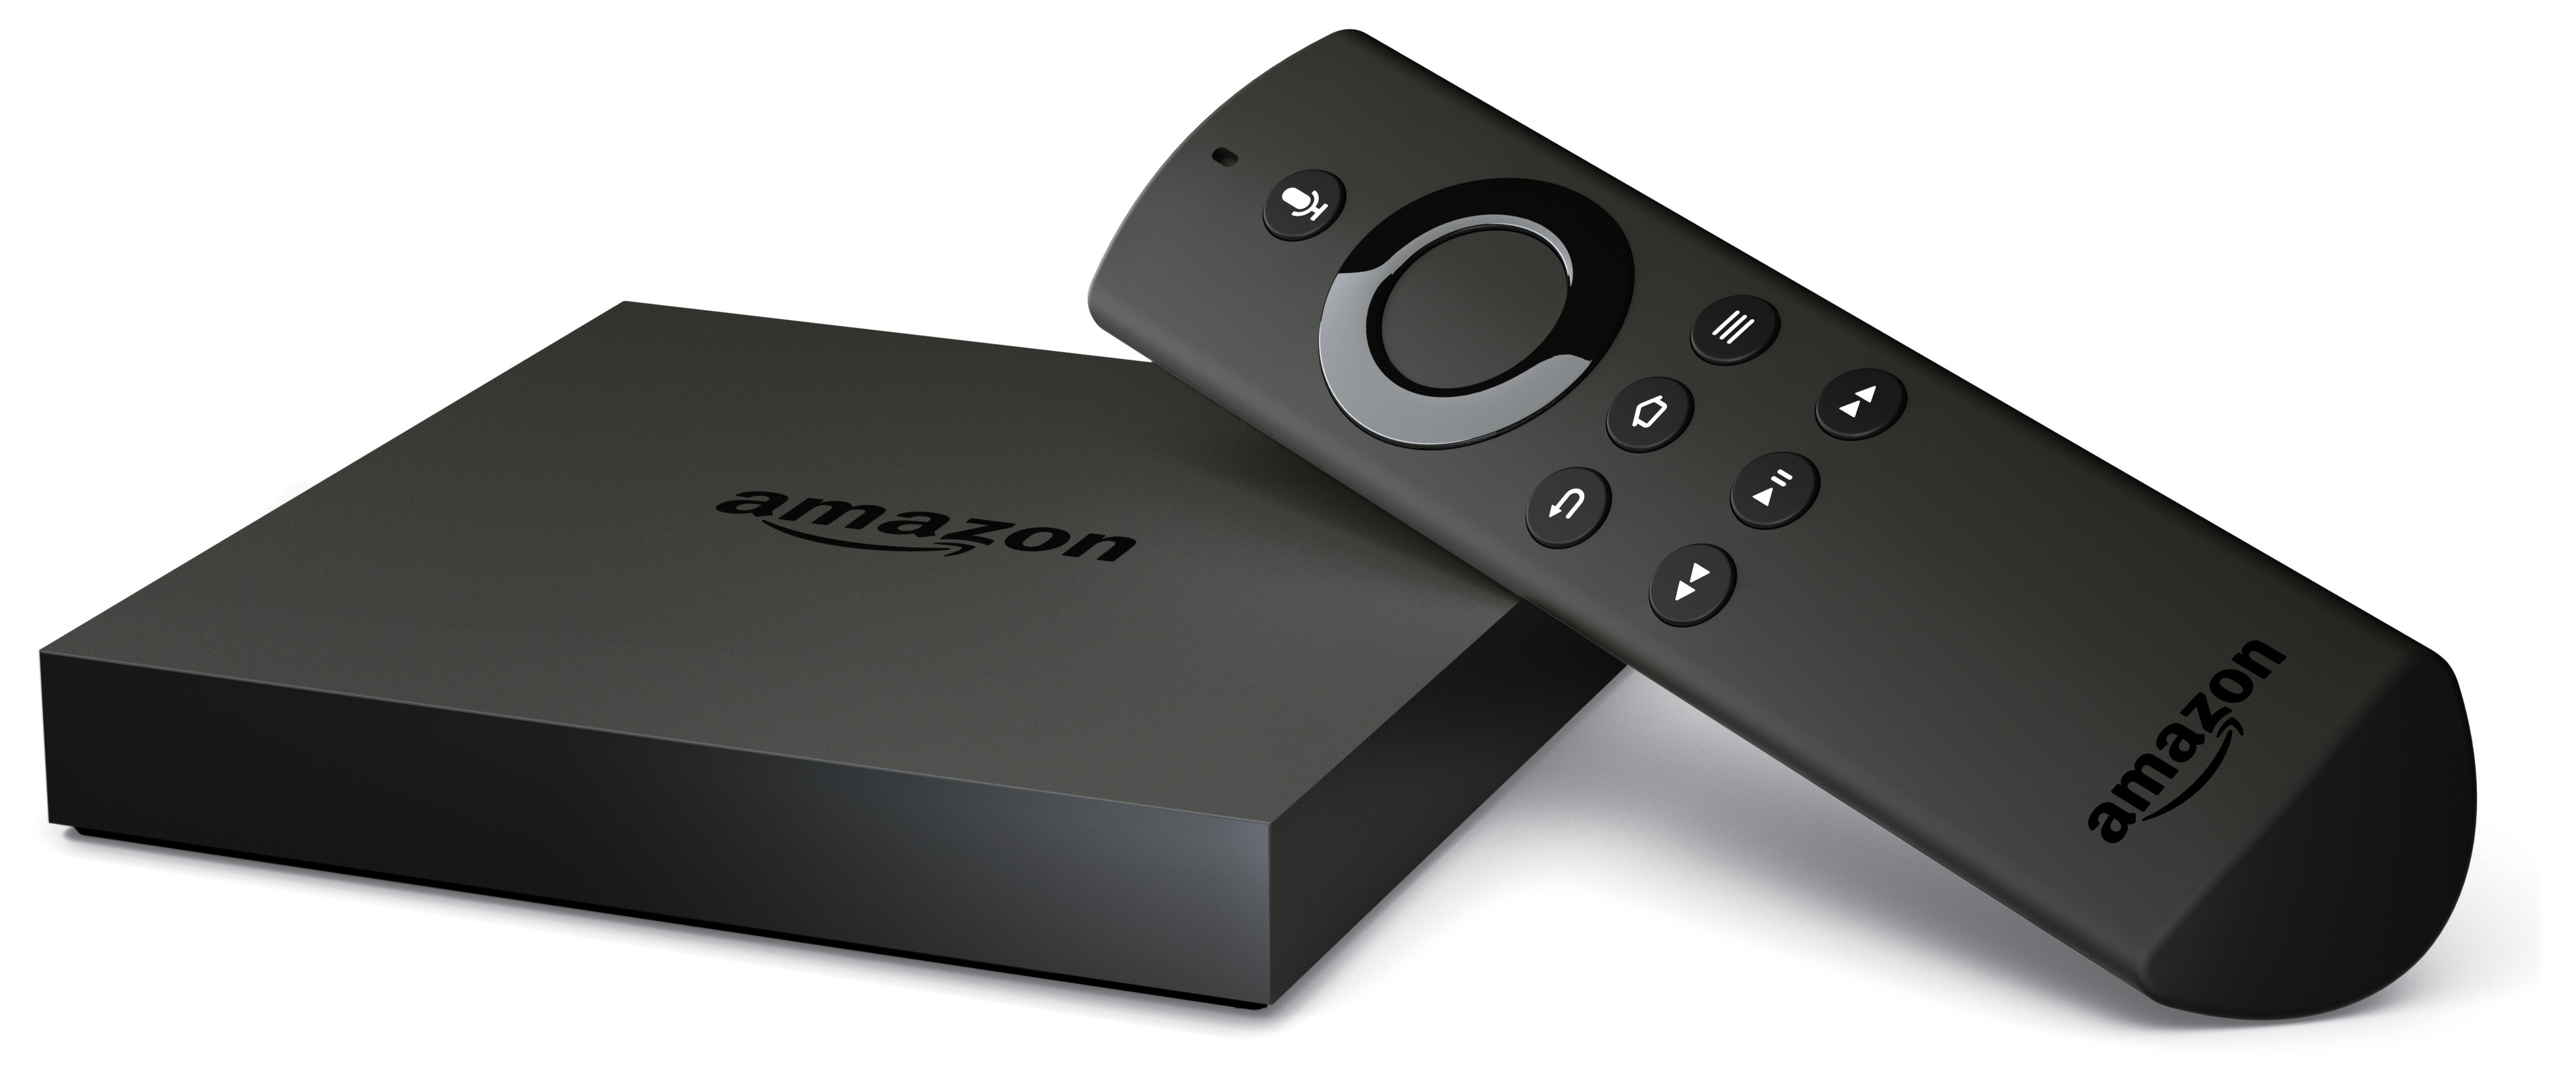 Amazon Fire TV 2 with Remote image 001